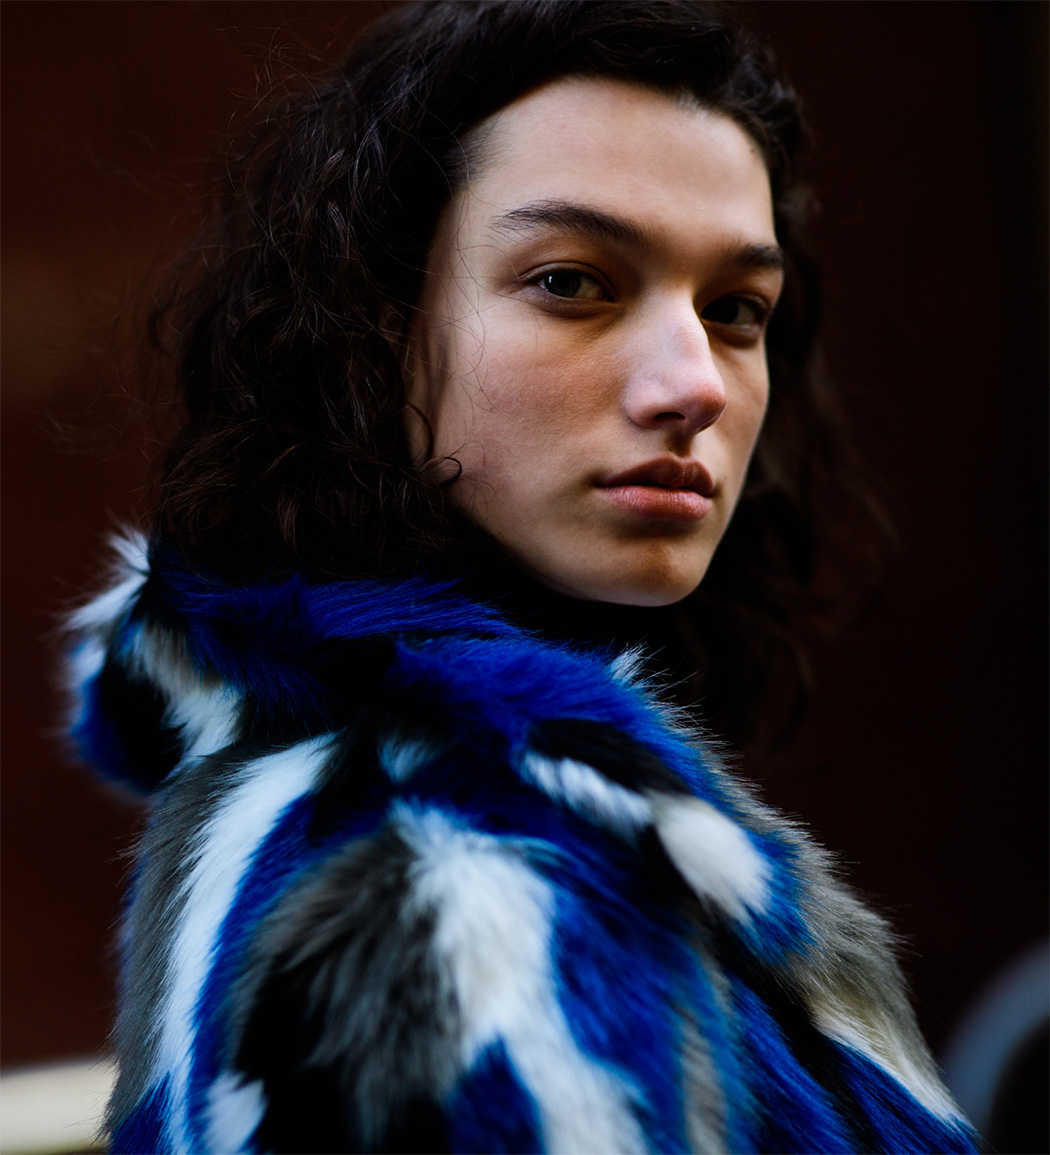 Le-21eme-Adam-Katz-Sinding-McKenna-Hellam-New-York-Fashion-Week-Fall-Winter-2017-2018_AKS1629